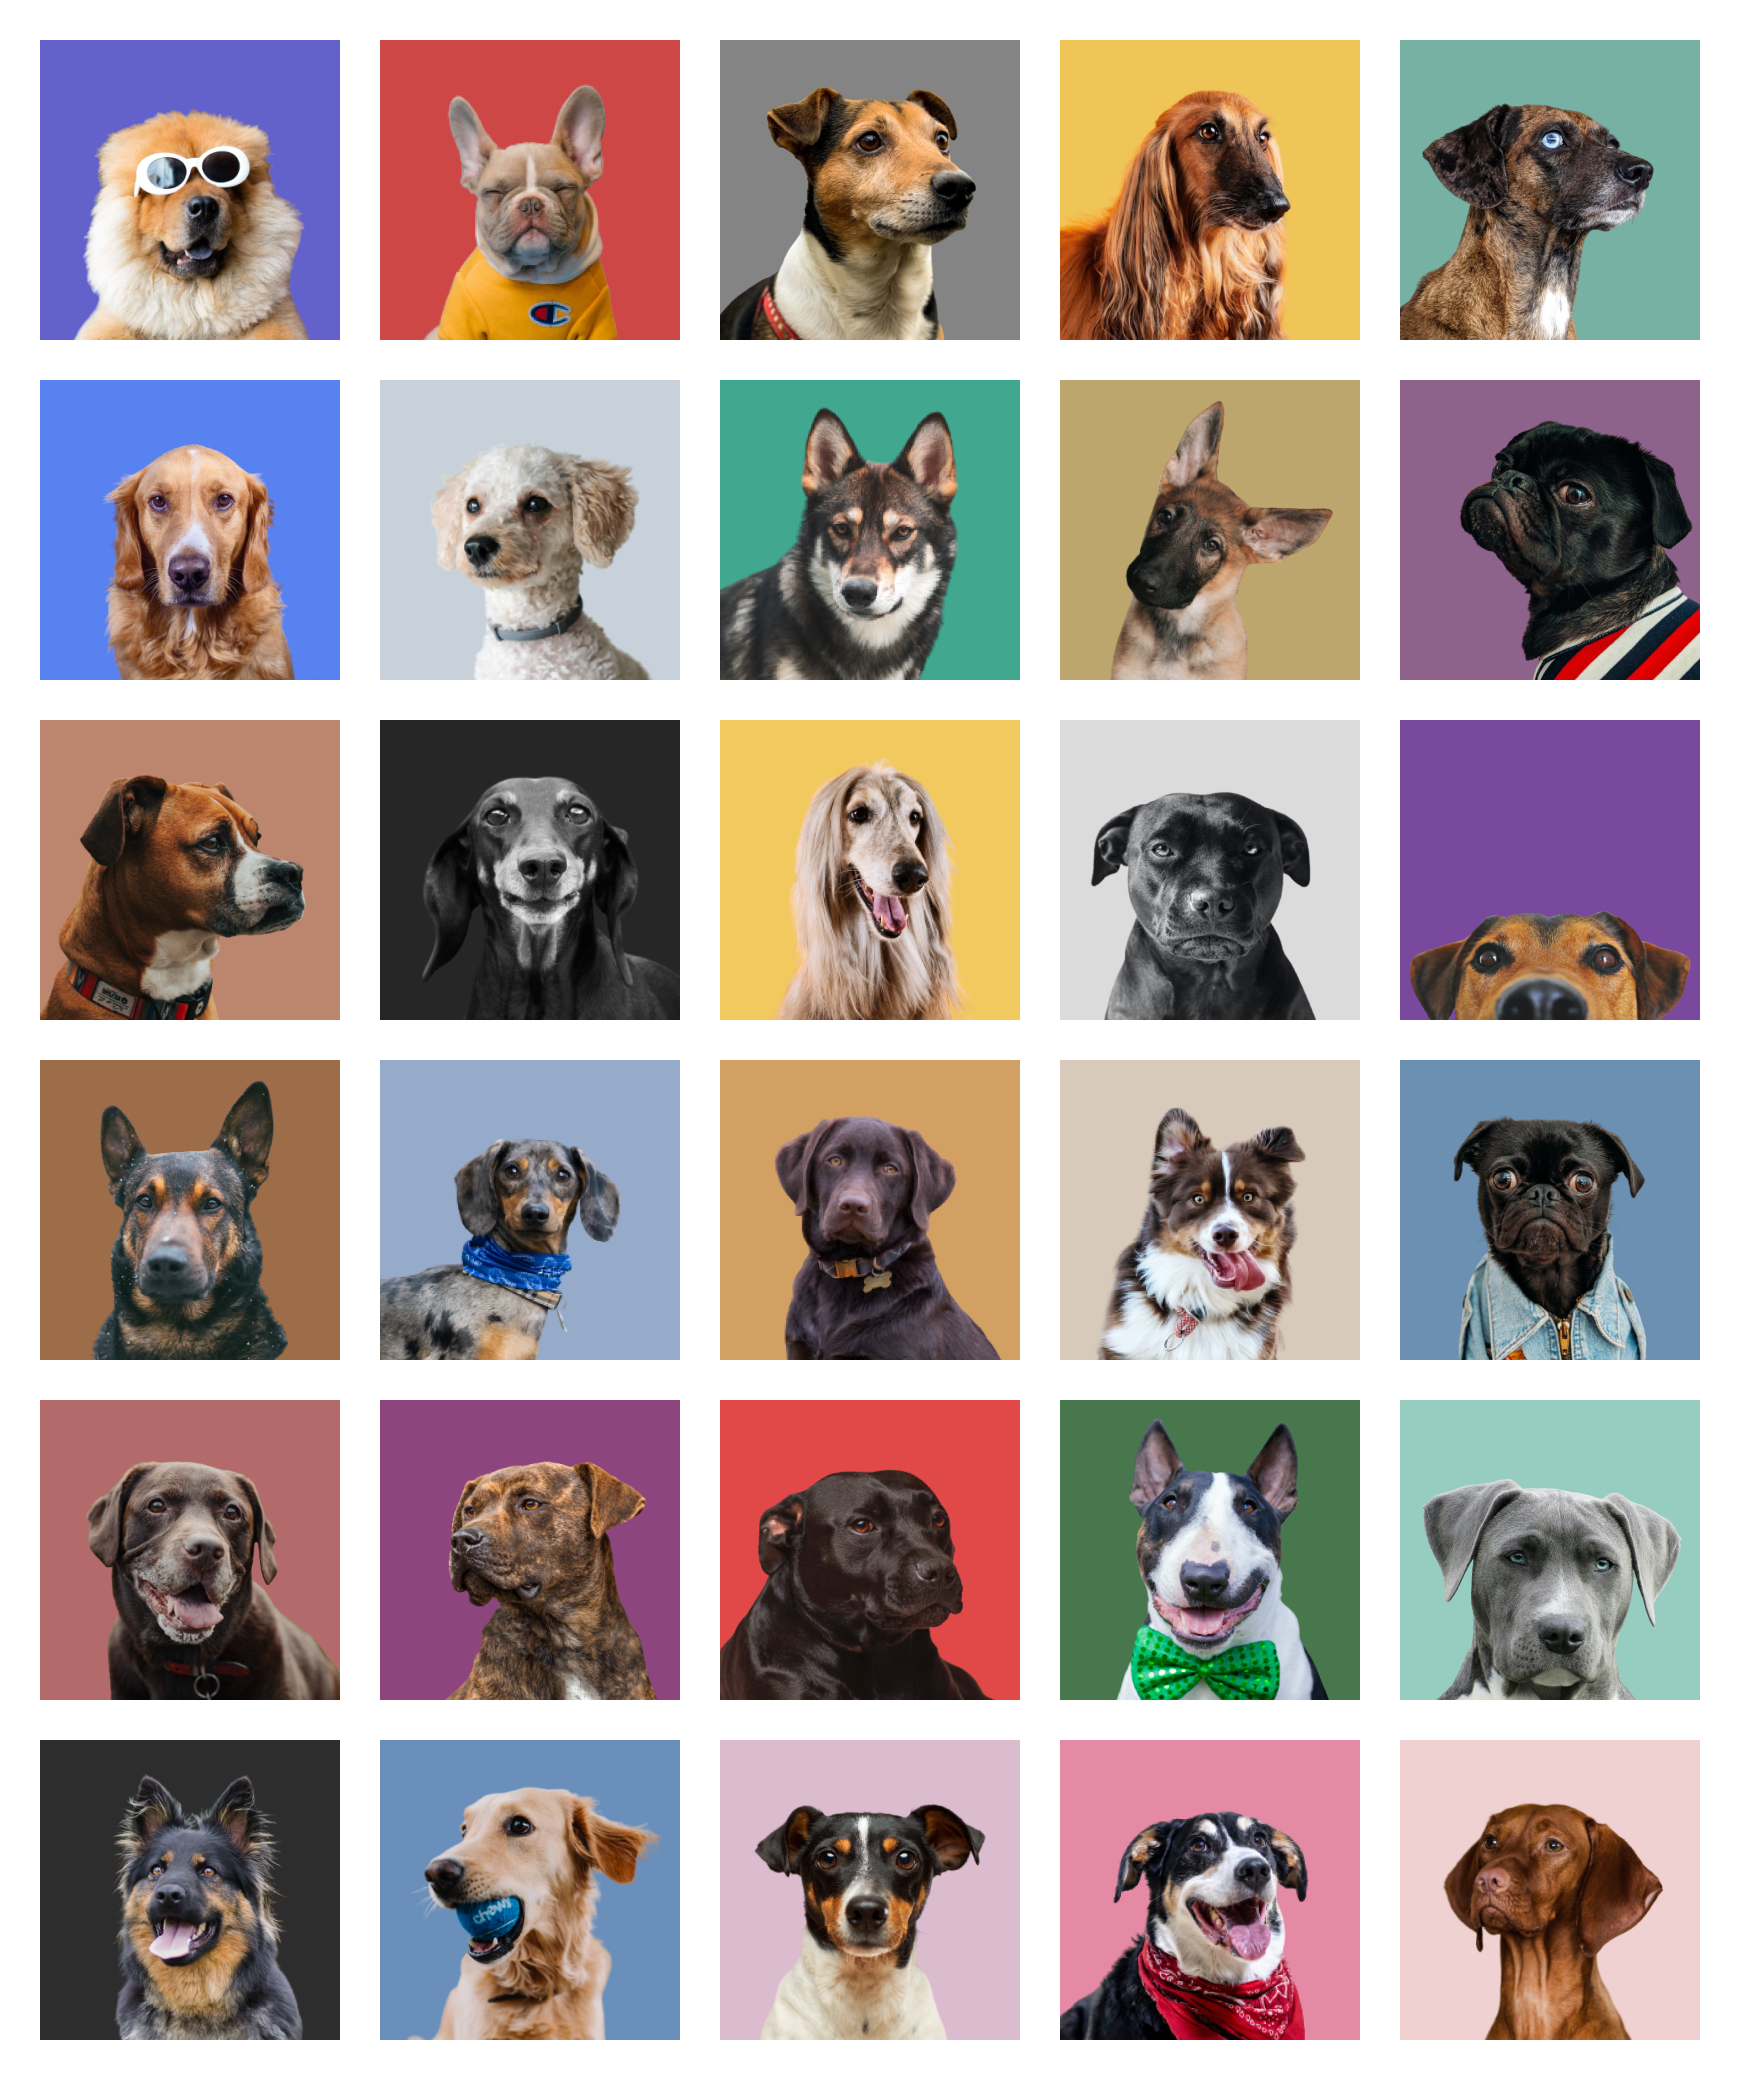 Free Avatars, lol - 60+ Adorable dog, cat and random animal avatars for your designs. Available for sketch, figma and PNGs.